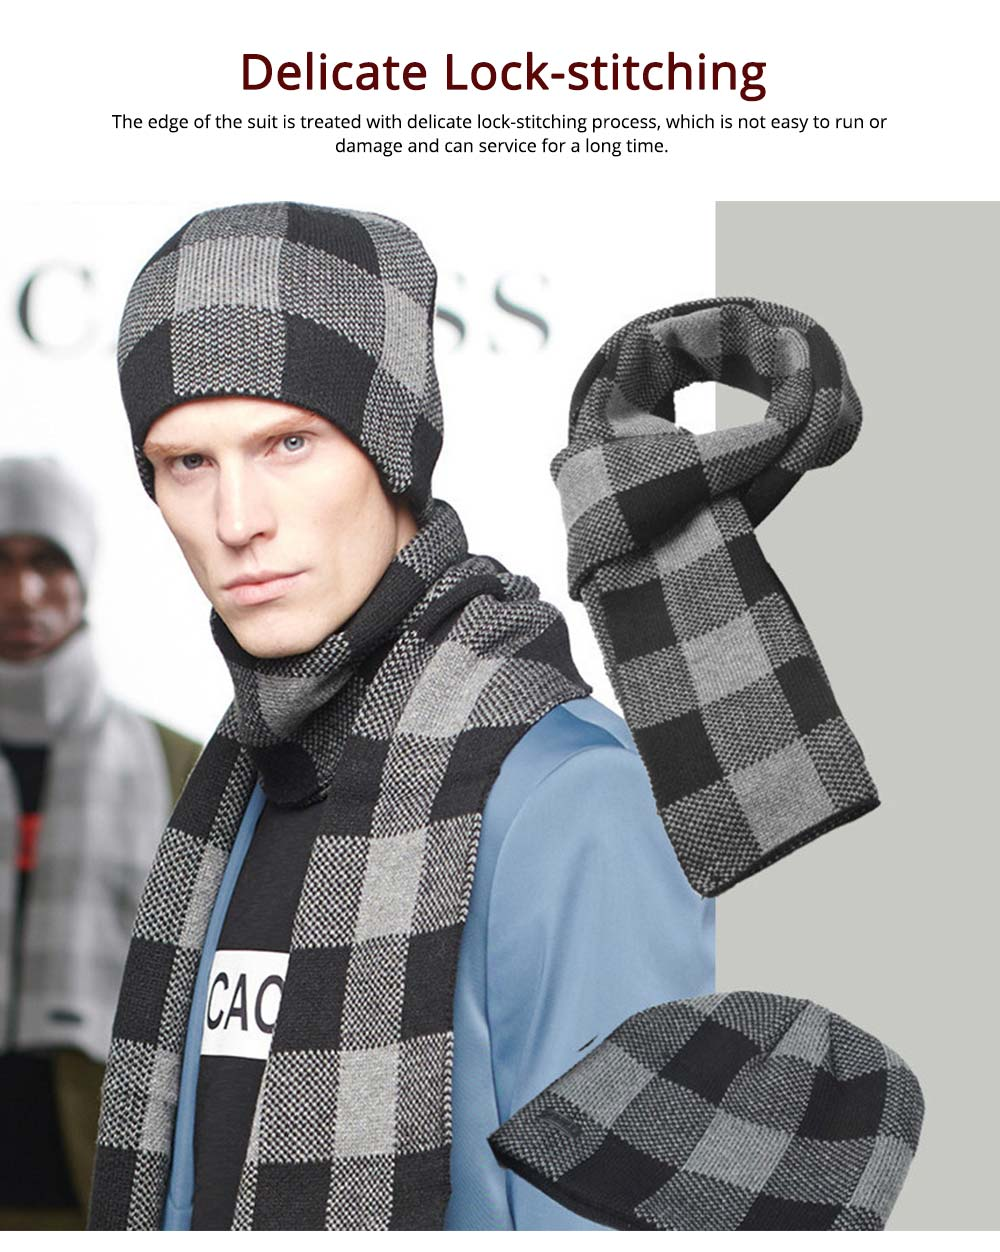 Stylish Plaid Thicken Knit Hat Scarf Set, Warm Anti-pilling Acrylic Hooded Beanie Cap Scarf Suit 3